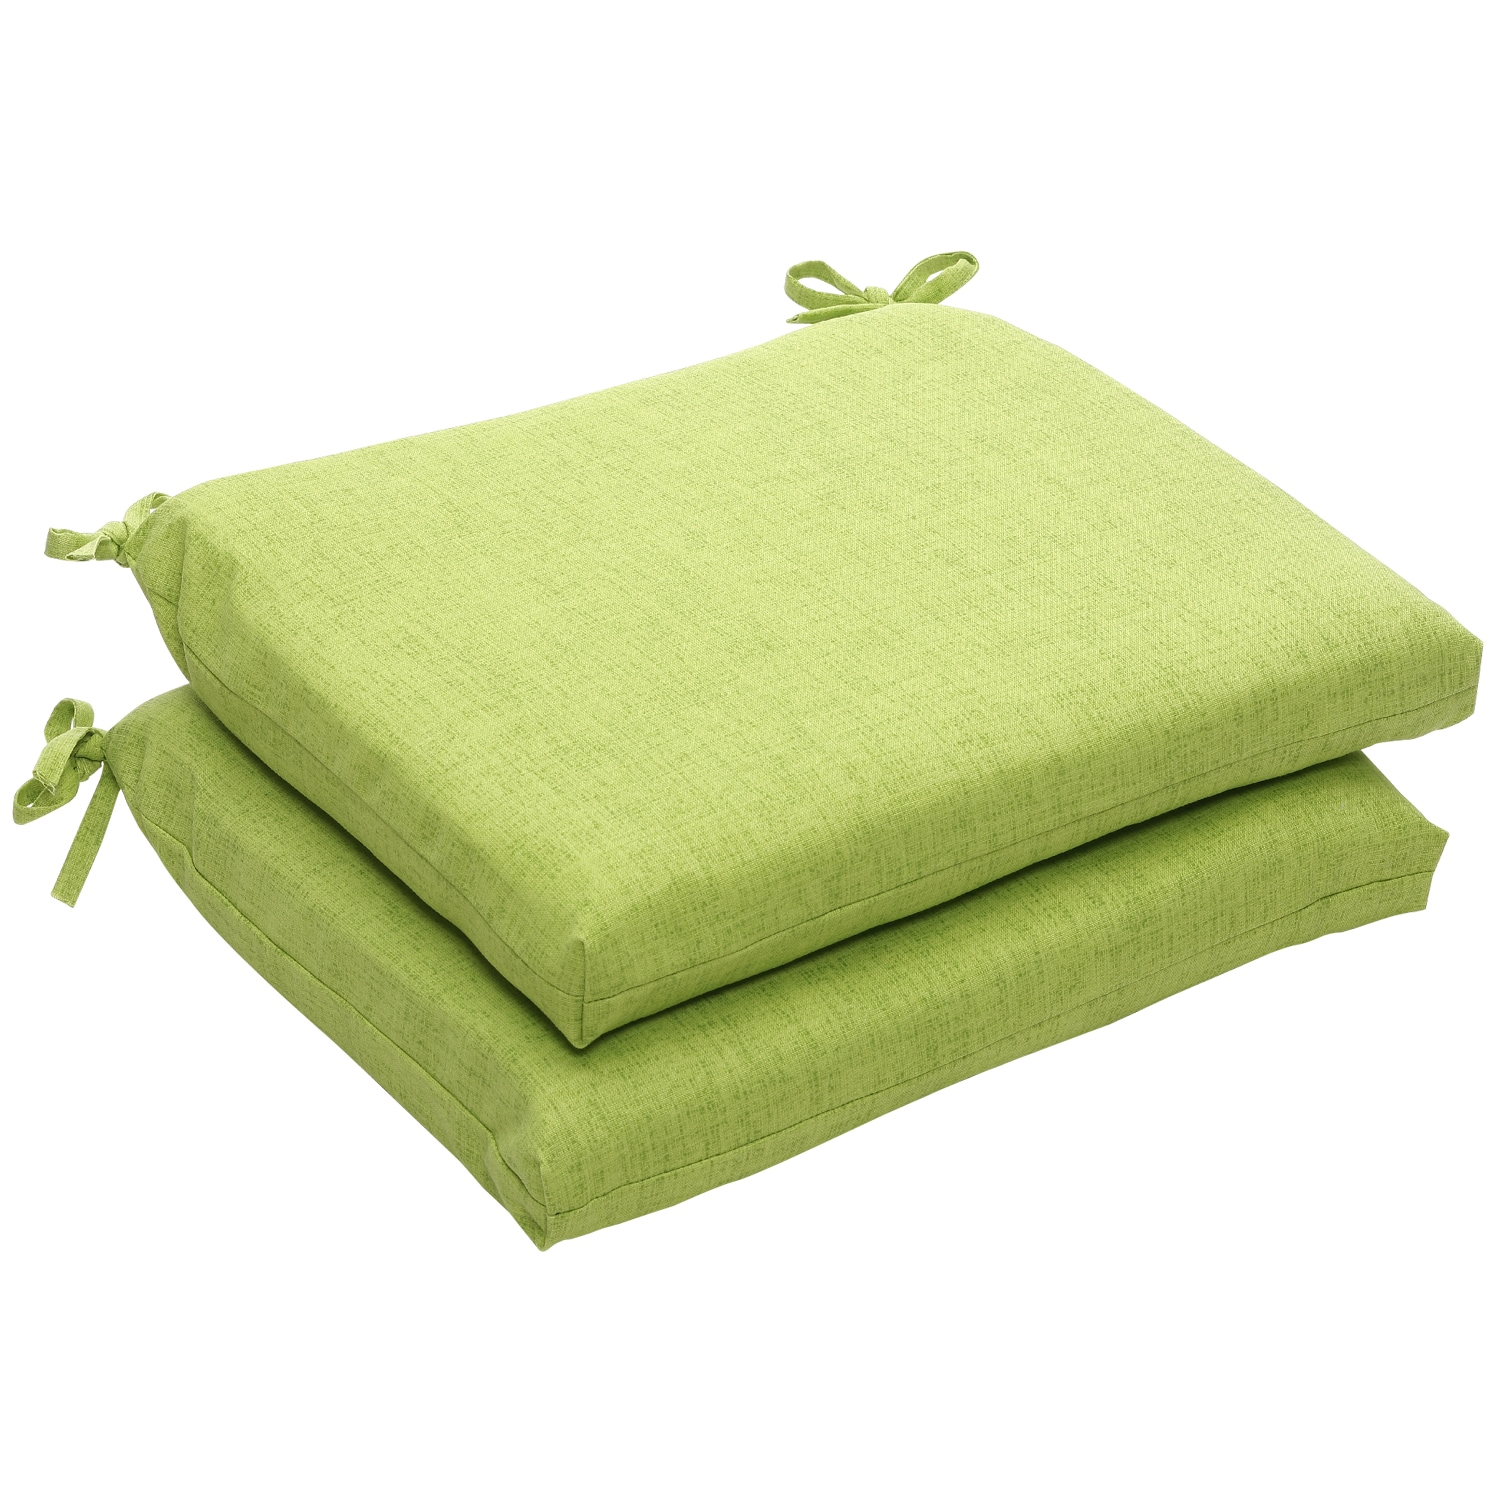 green chair cushions ciao baby portable travel high outdoor textured solid squared seat set of